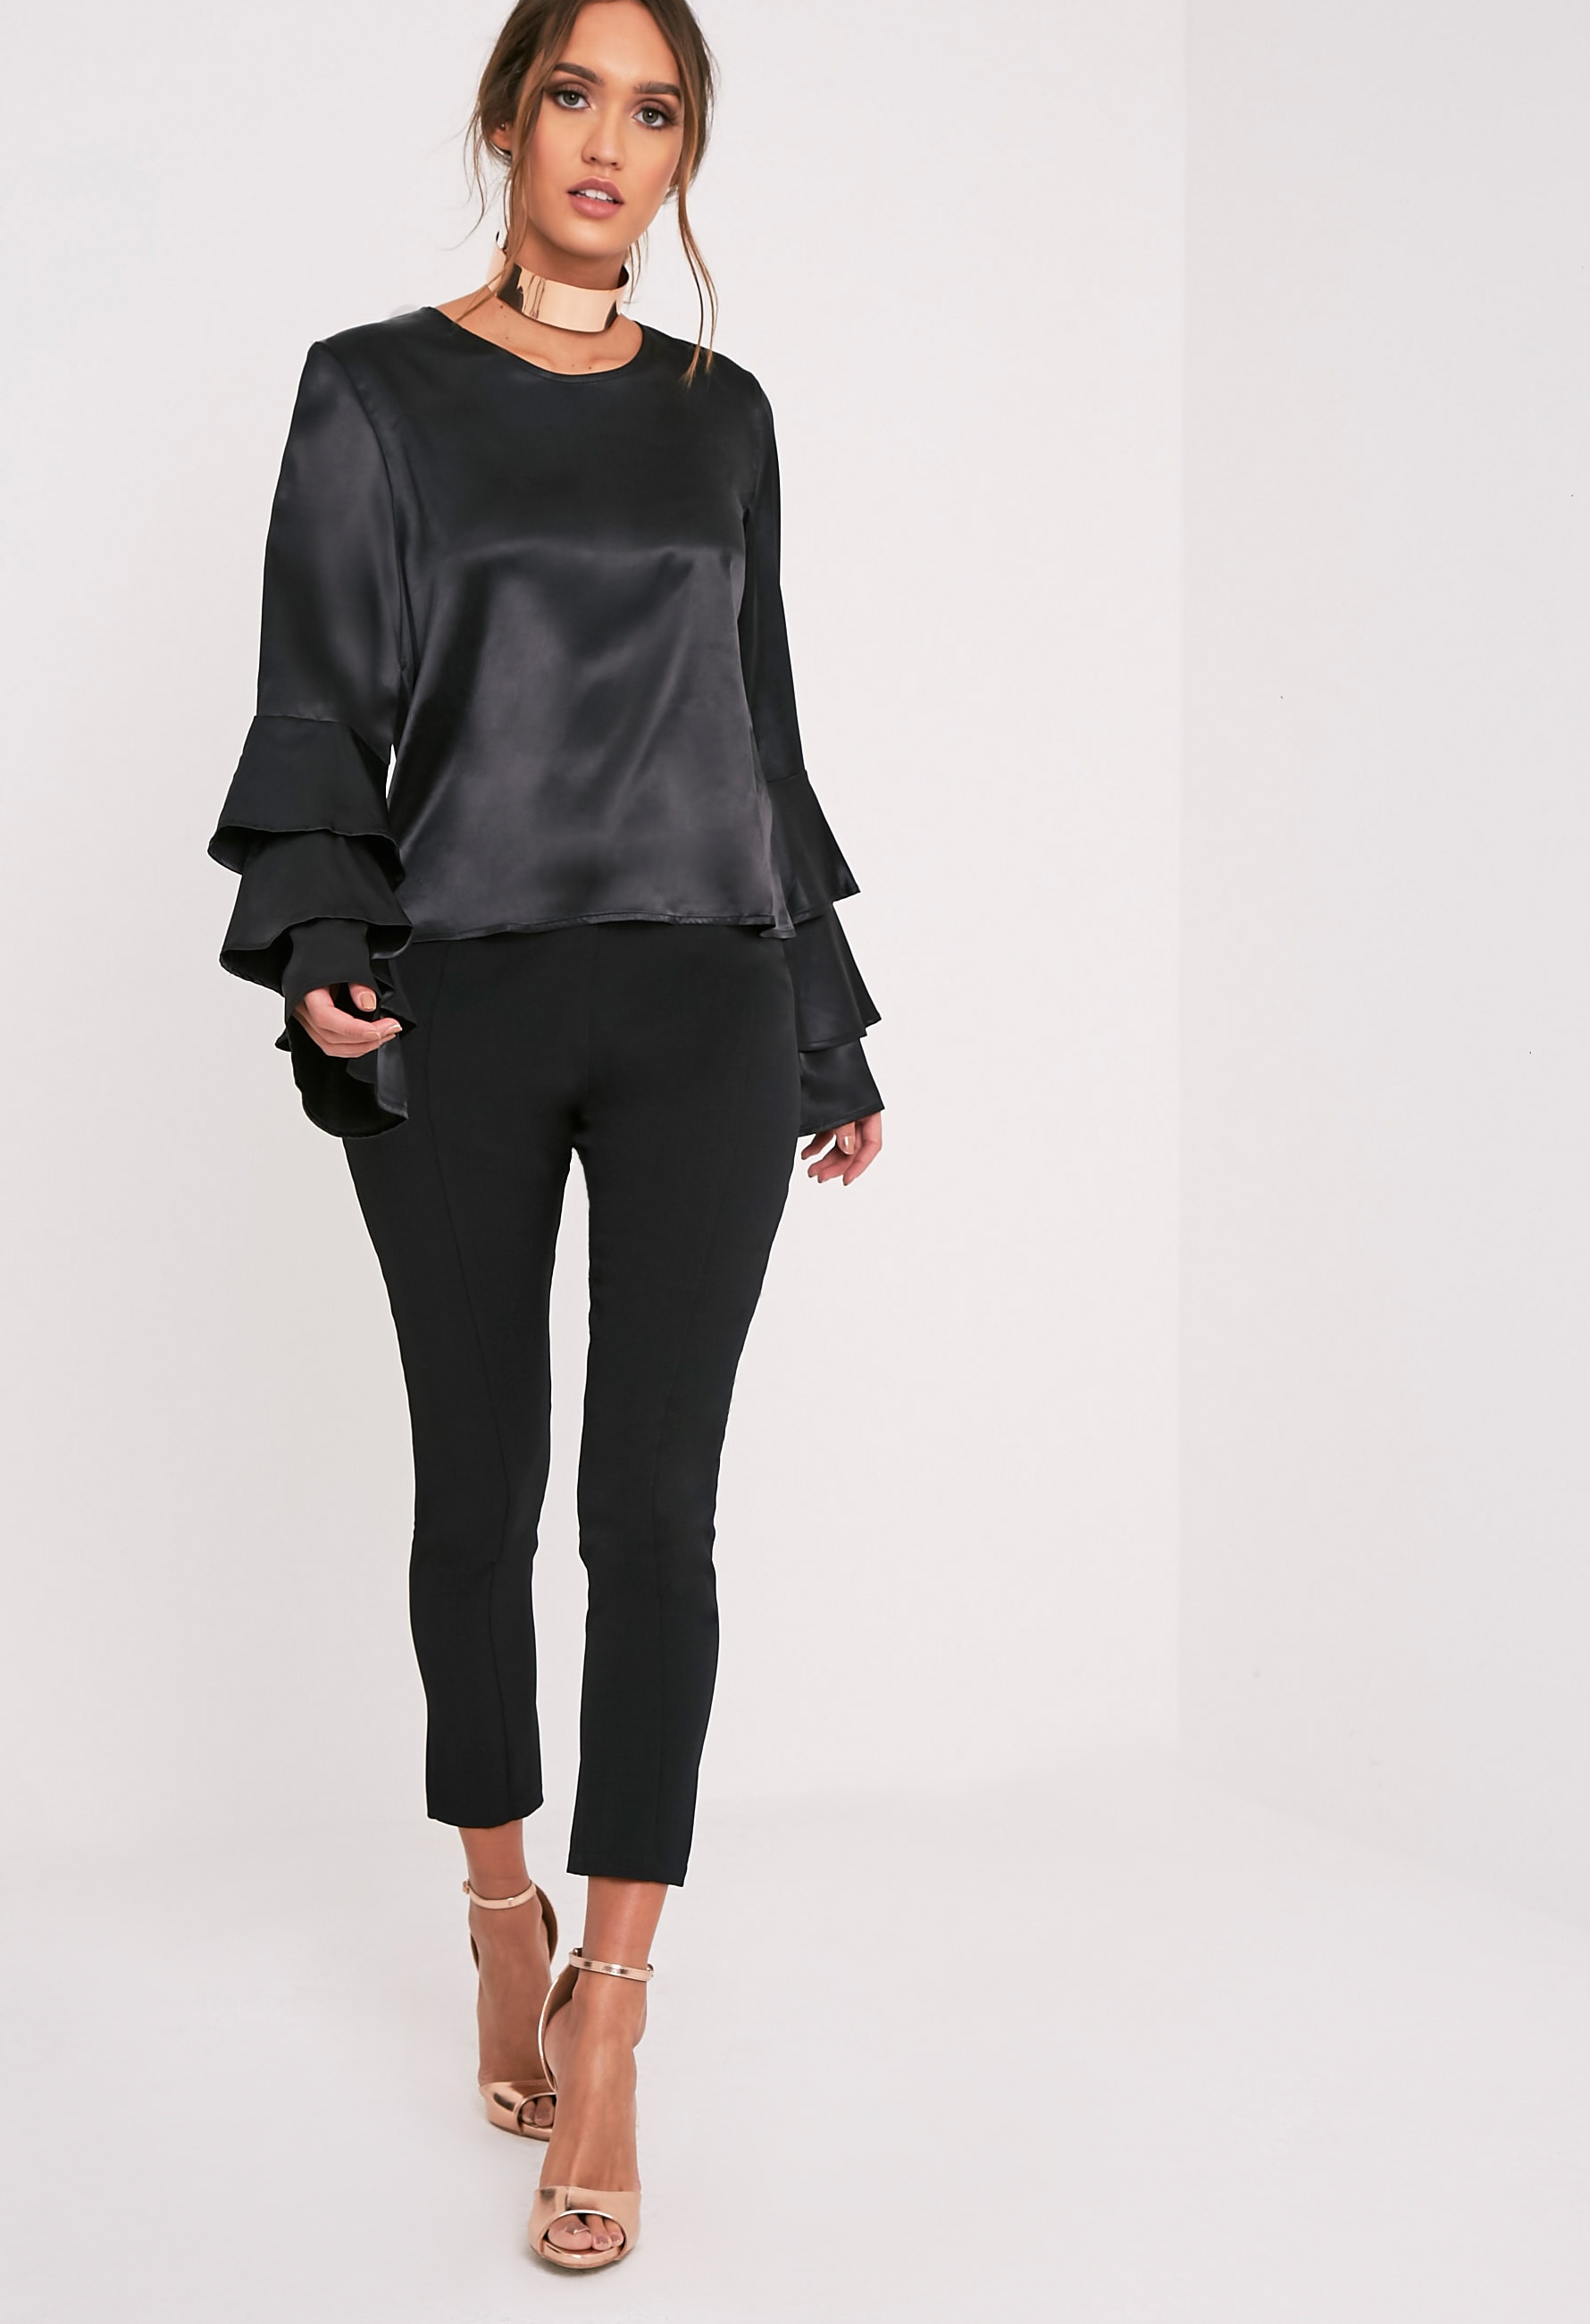 Layle Black Frill Sleeve Woven Blouse 5